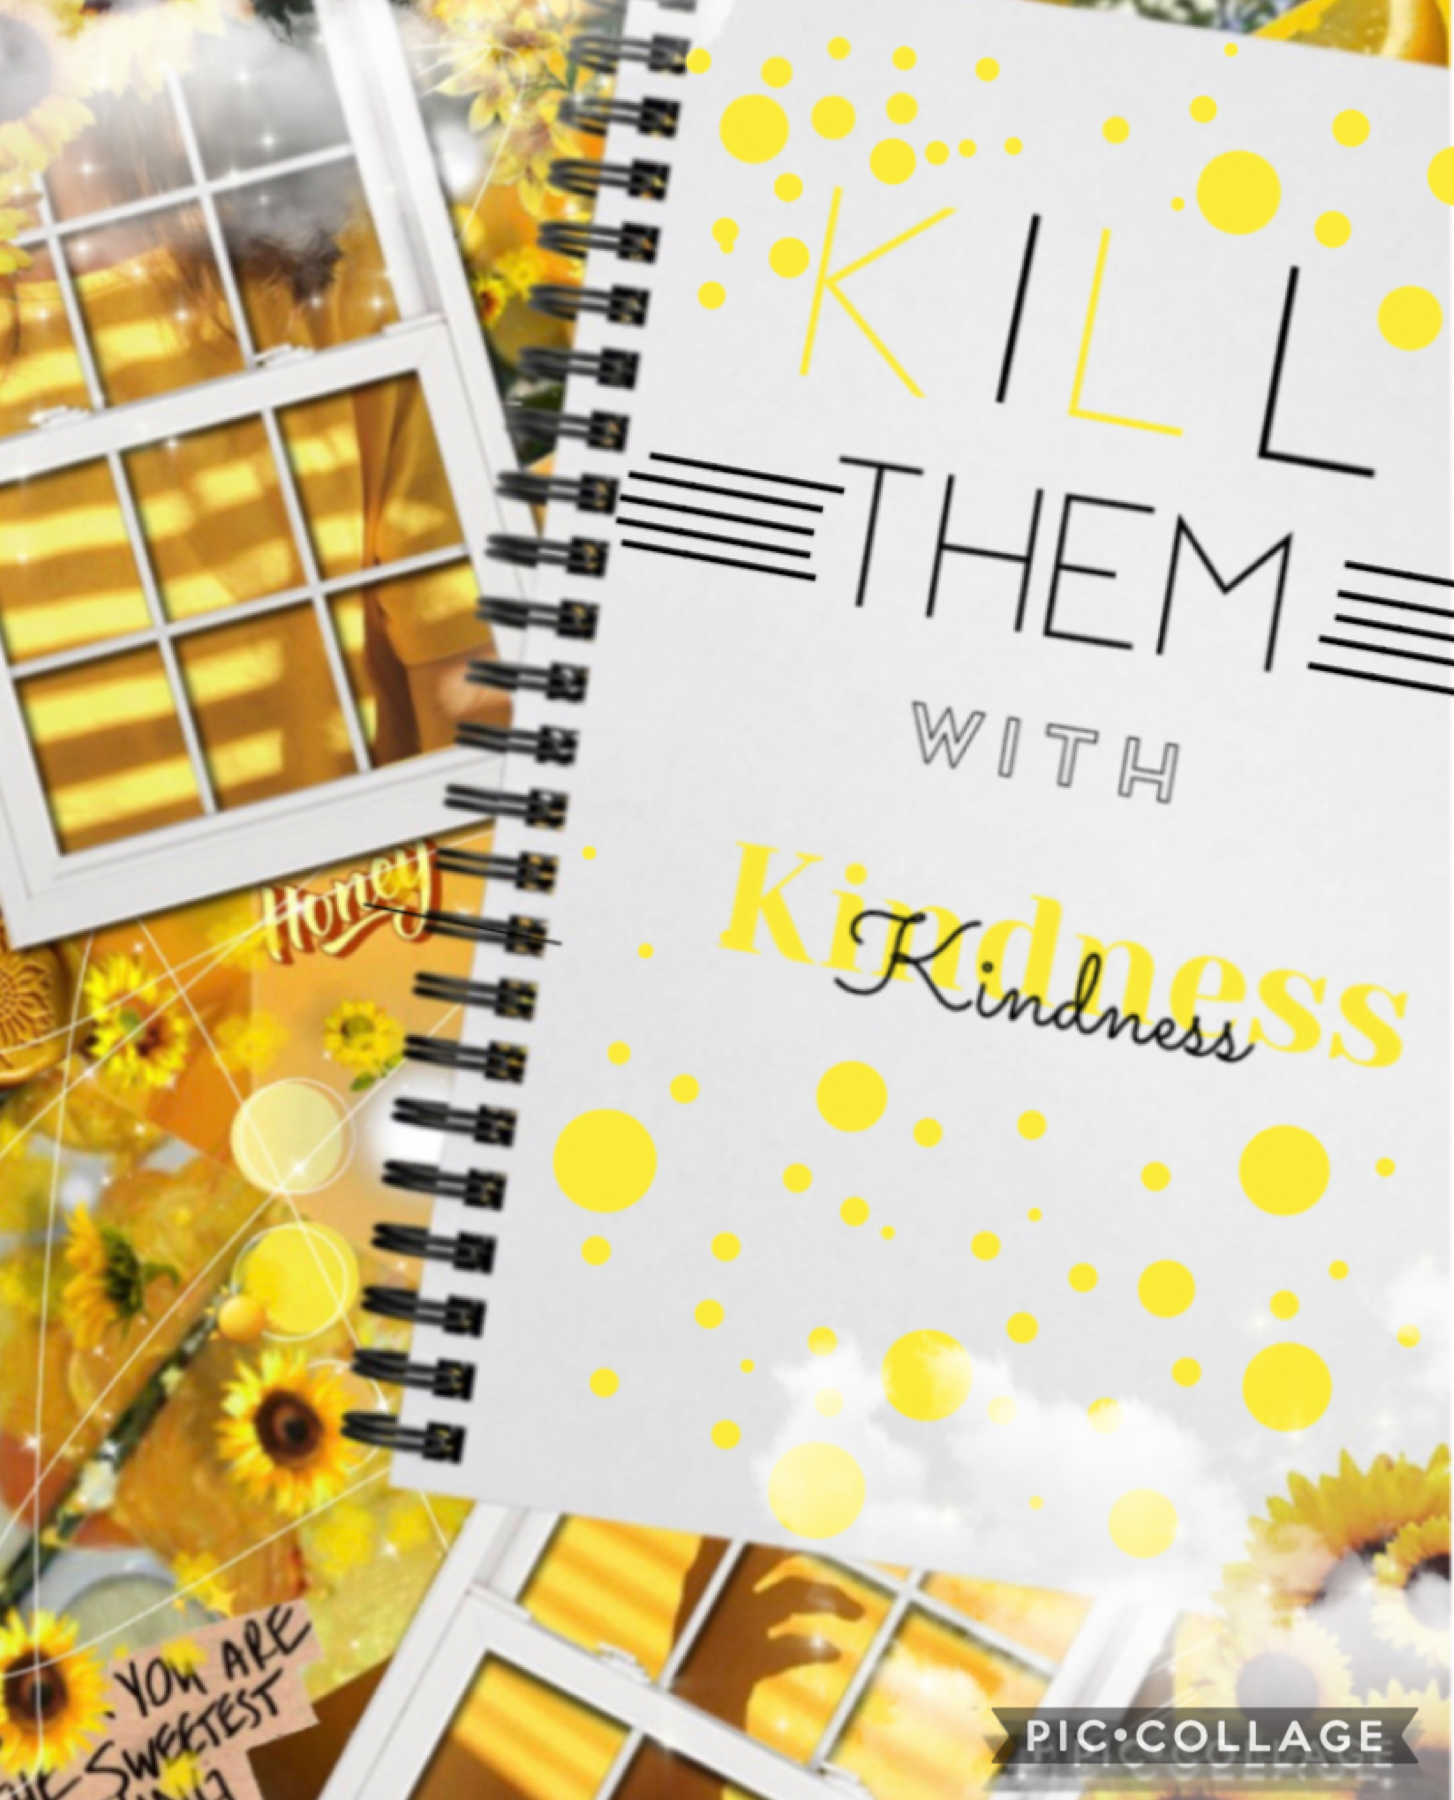 Tap 🌻 hey guys - COLLaB week to start of the new theme - K I N D N E S S - _Sundara_ T E X T -BloomingBadgers- BA CK GR OU N D - Reizend- E X T RA S  I hope y'all enjoy this theme 👏🏻😁 - Capley  Q O T D : One kind thing you've done today?